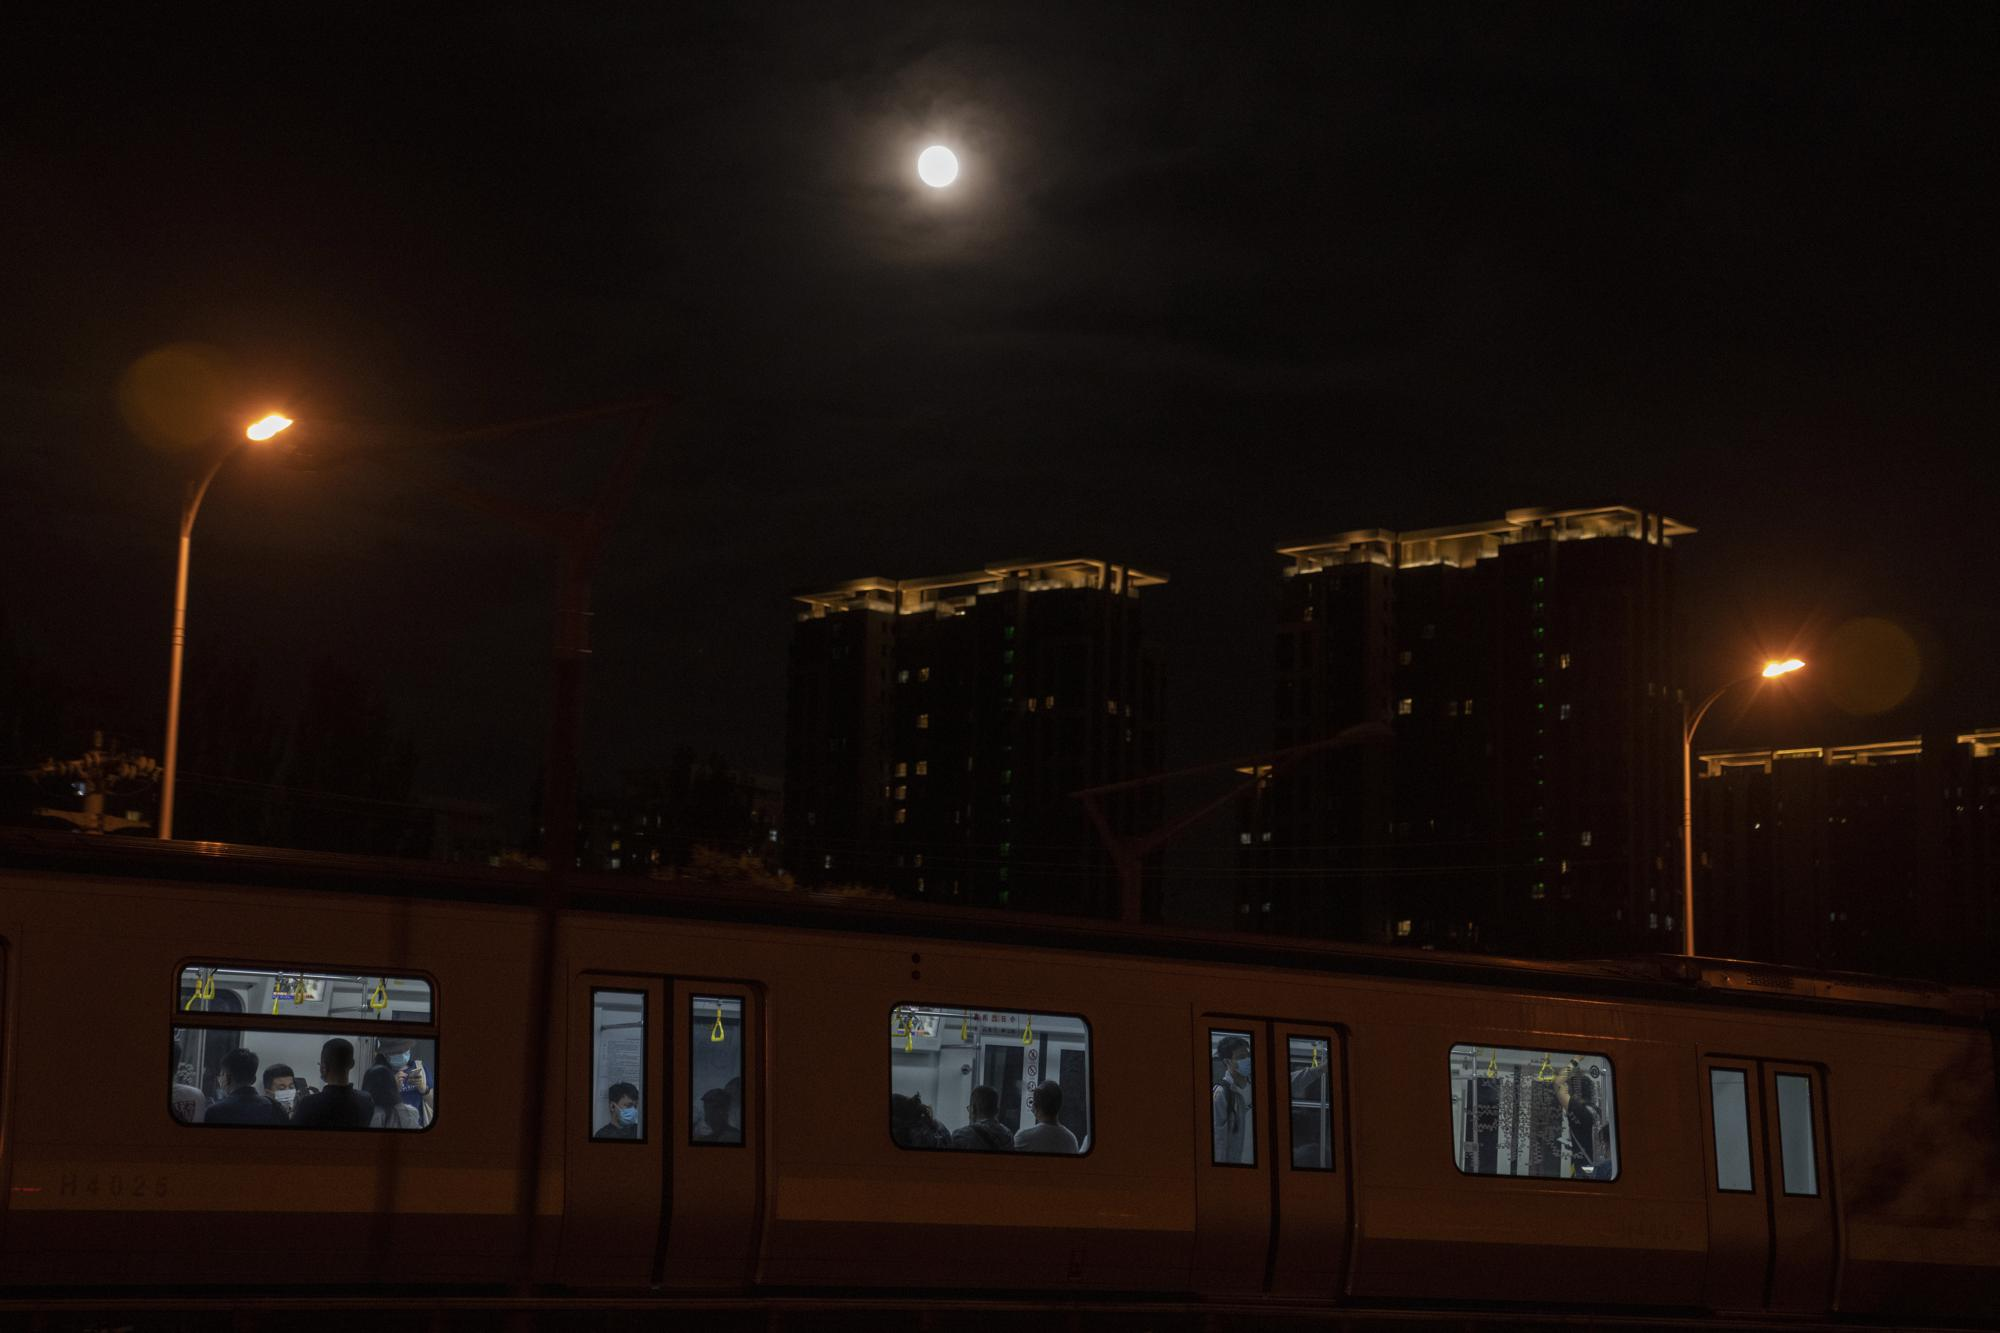 A supermoon rises over a train carrying passengers in Beijing on Wednesday, May 26, 2021. (AP Photo/Ng Han Guan)